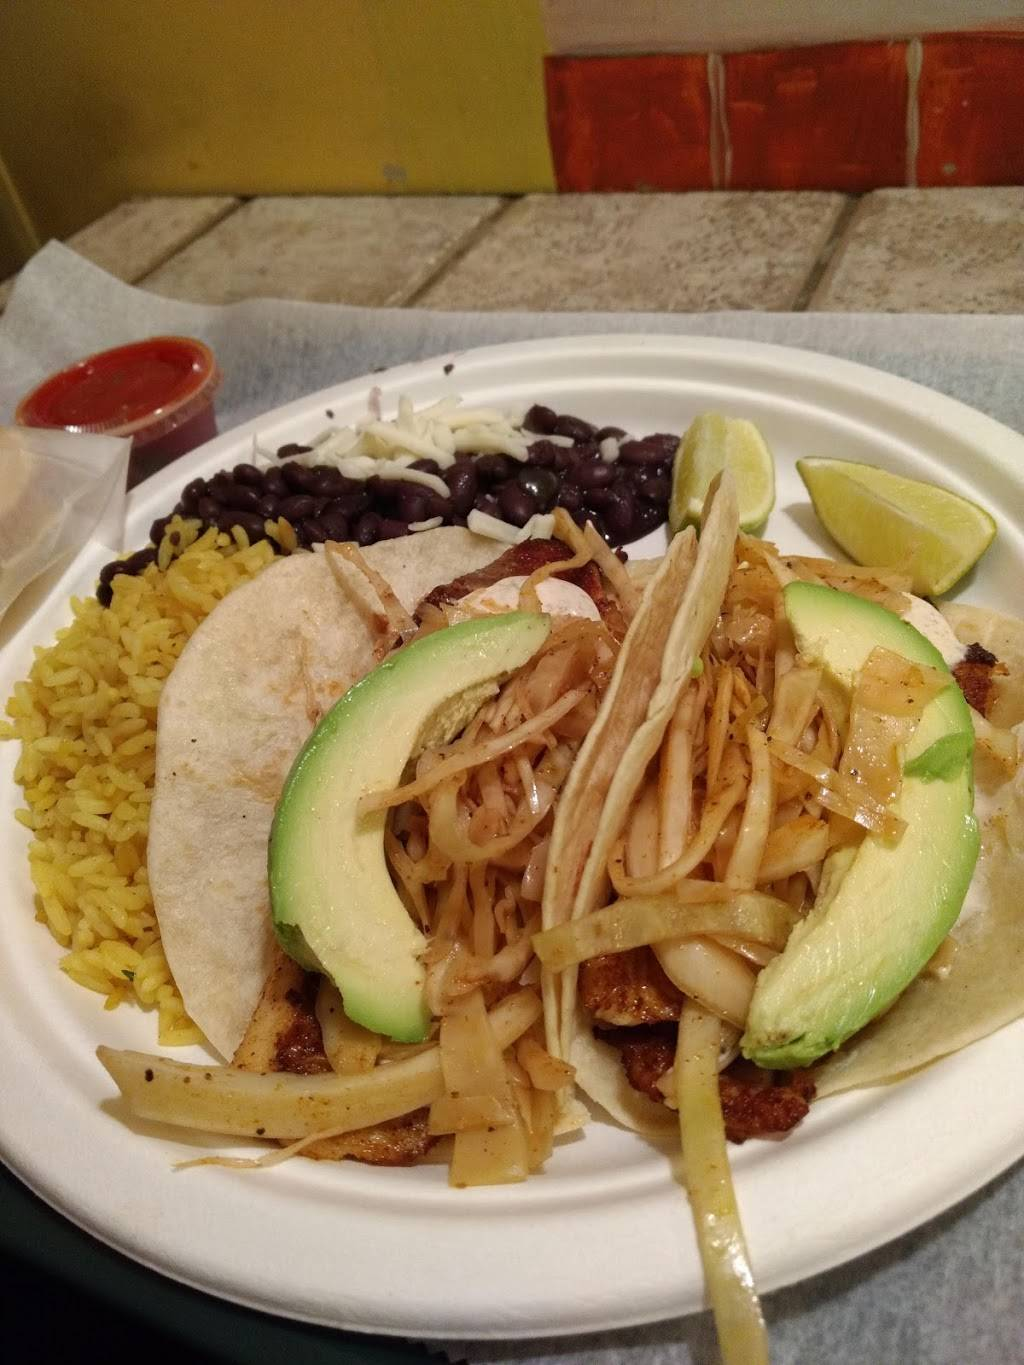 The Whole Enchilada | meal takeaway | 1121 Boston Post Rd, Westbrook, CT 06498, USA | 8603991221 OR +1 860-399-1221